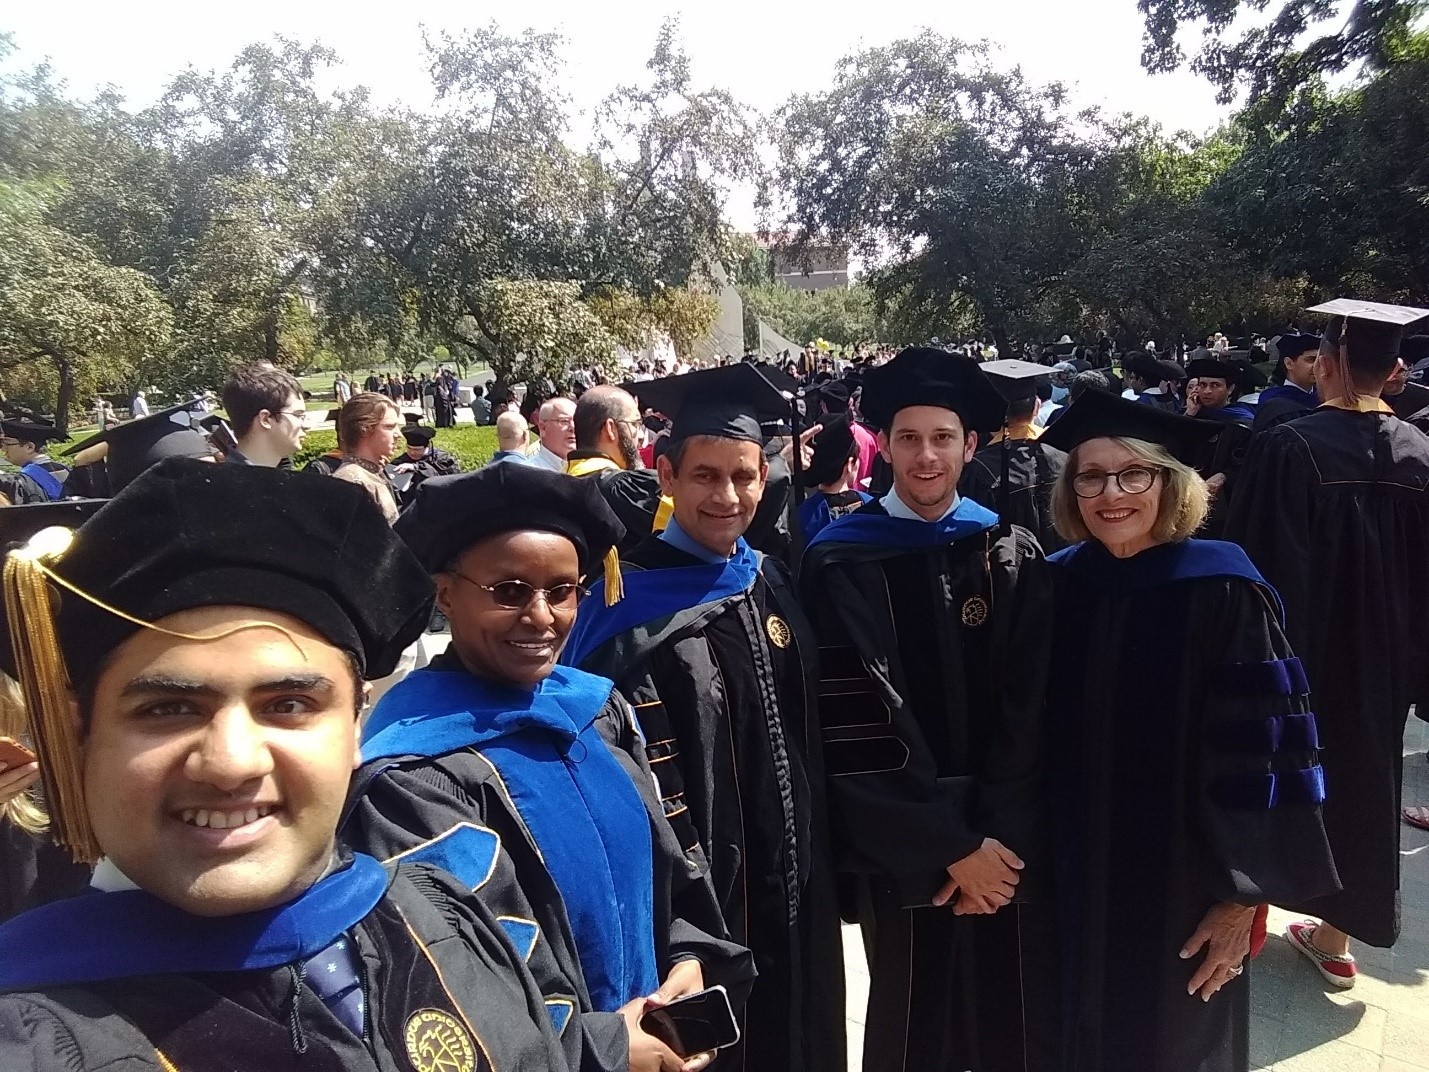 Student and faculty taking a selfie in a graduate procession